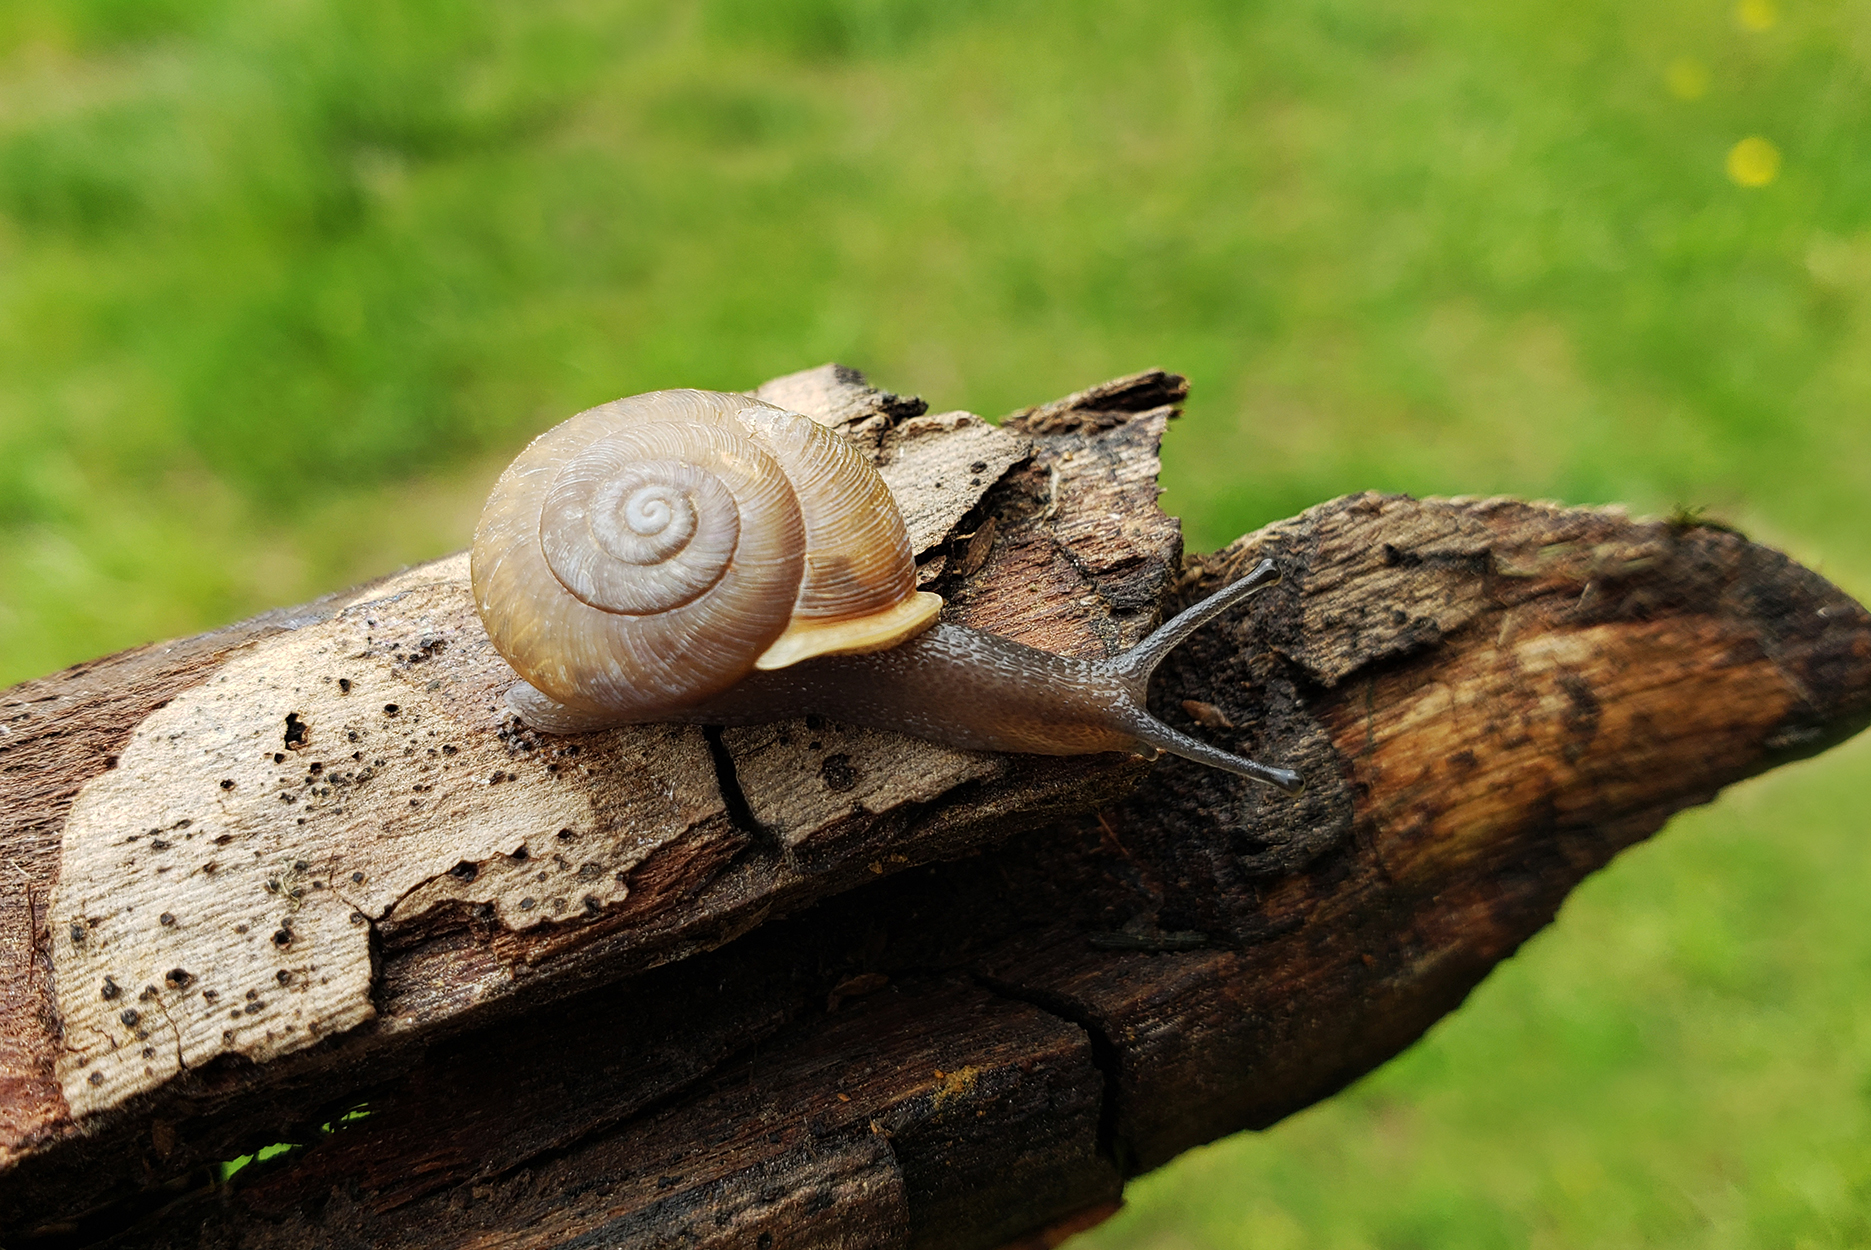 Micro-photograph of old forest log with a close view of a snail stretching his neck to look down. Bright green grasses blurred in the background.